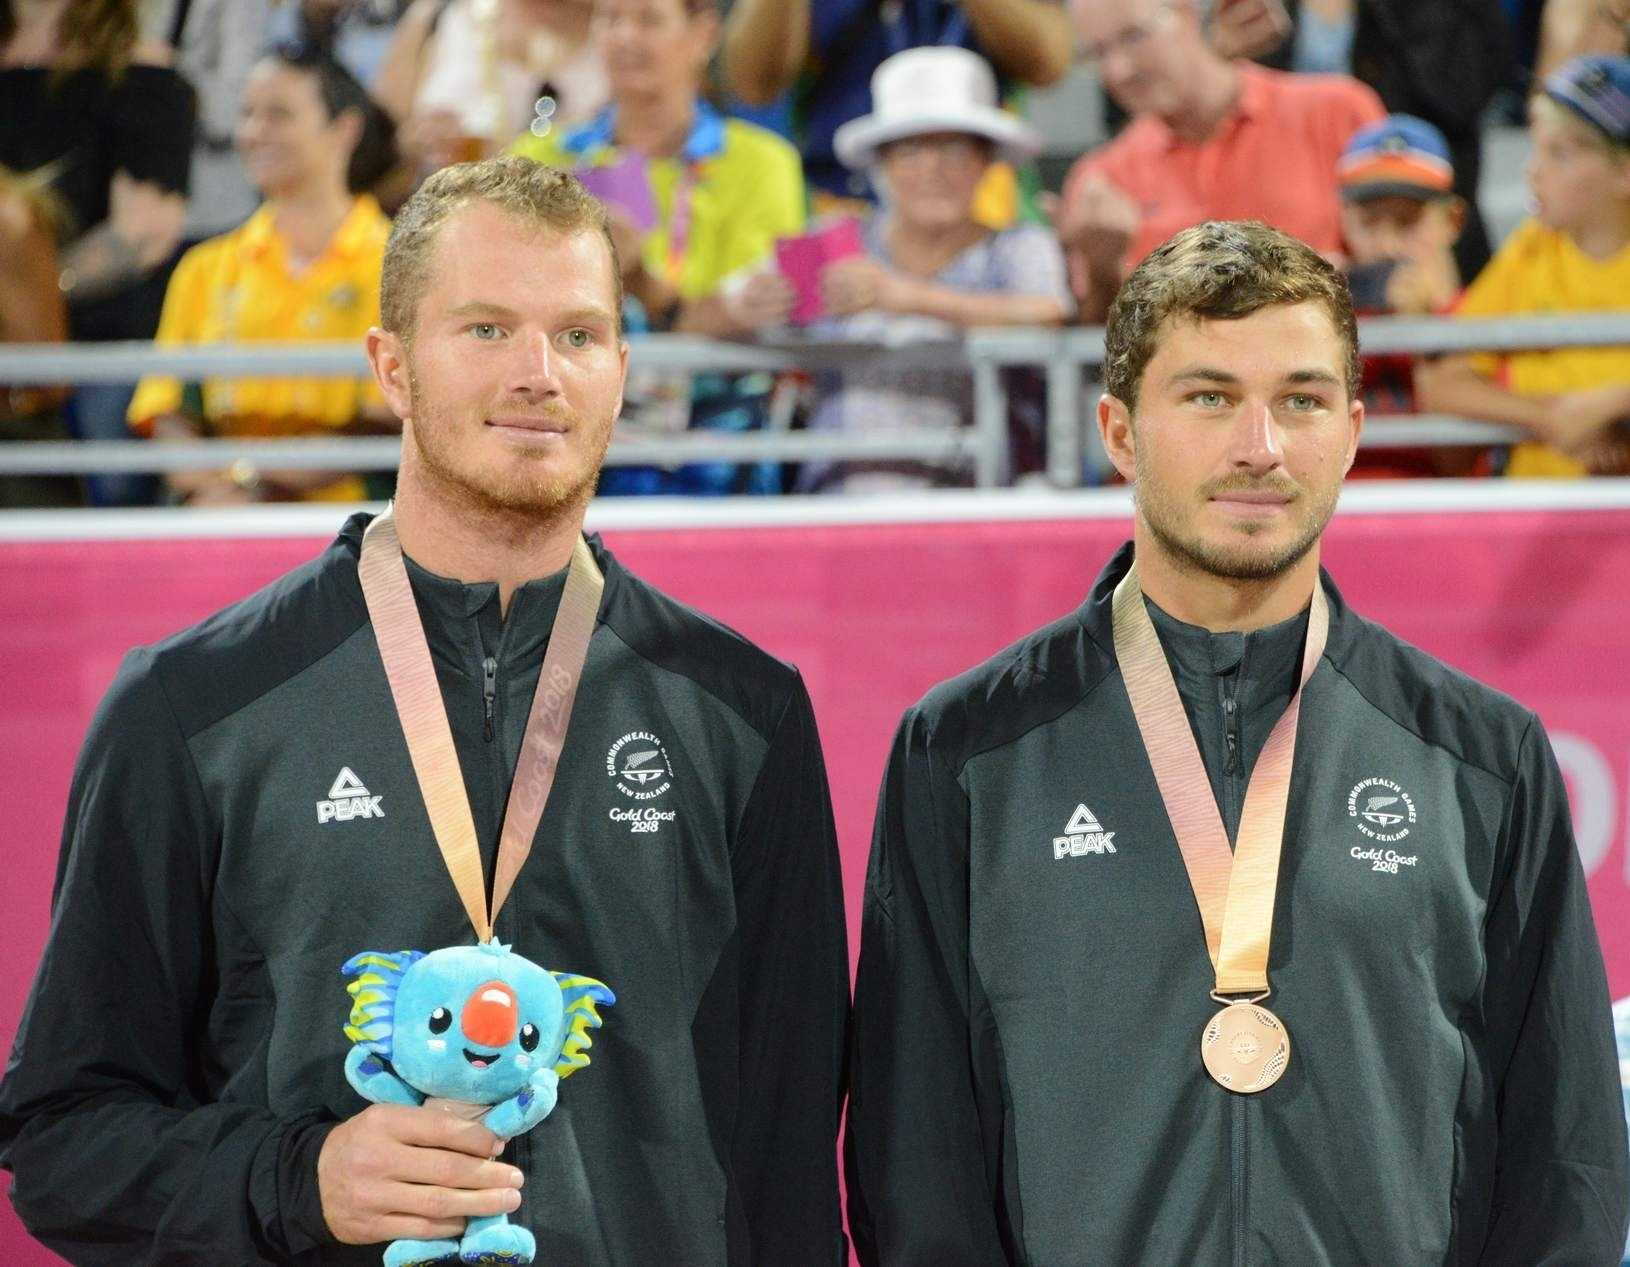 Ben and Sam all smiles with their bronze medals at the Gold Coast. Photocredit: Beach Major Series